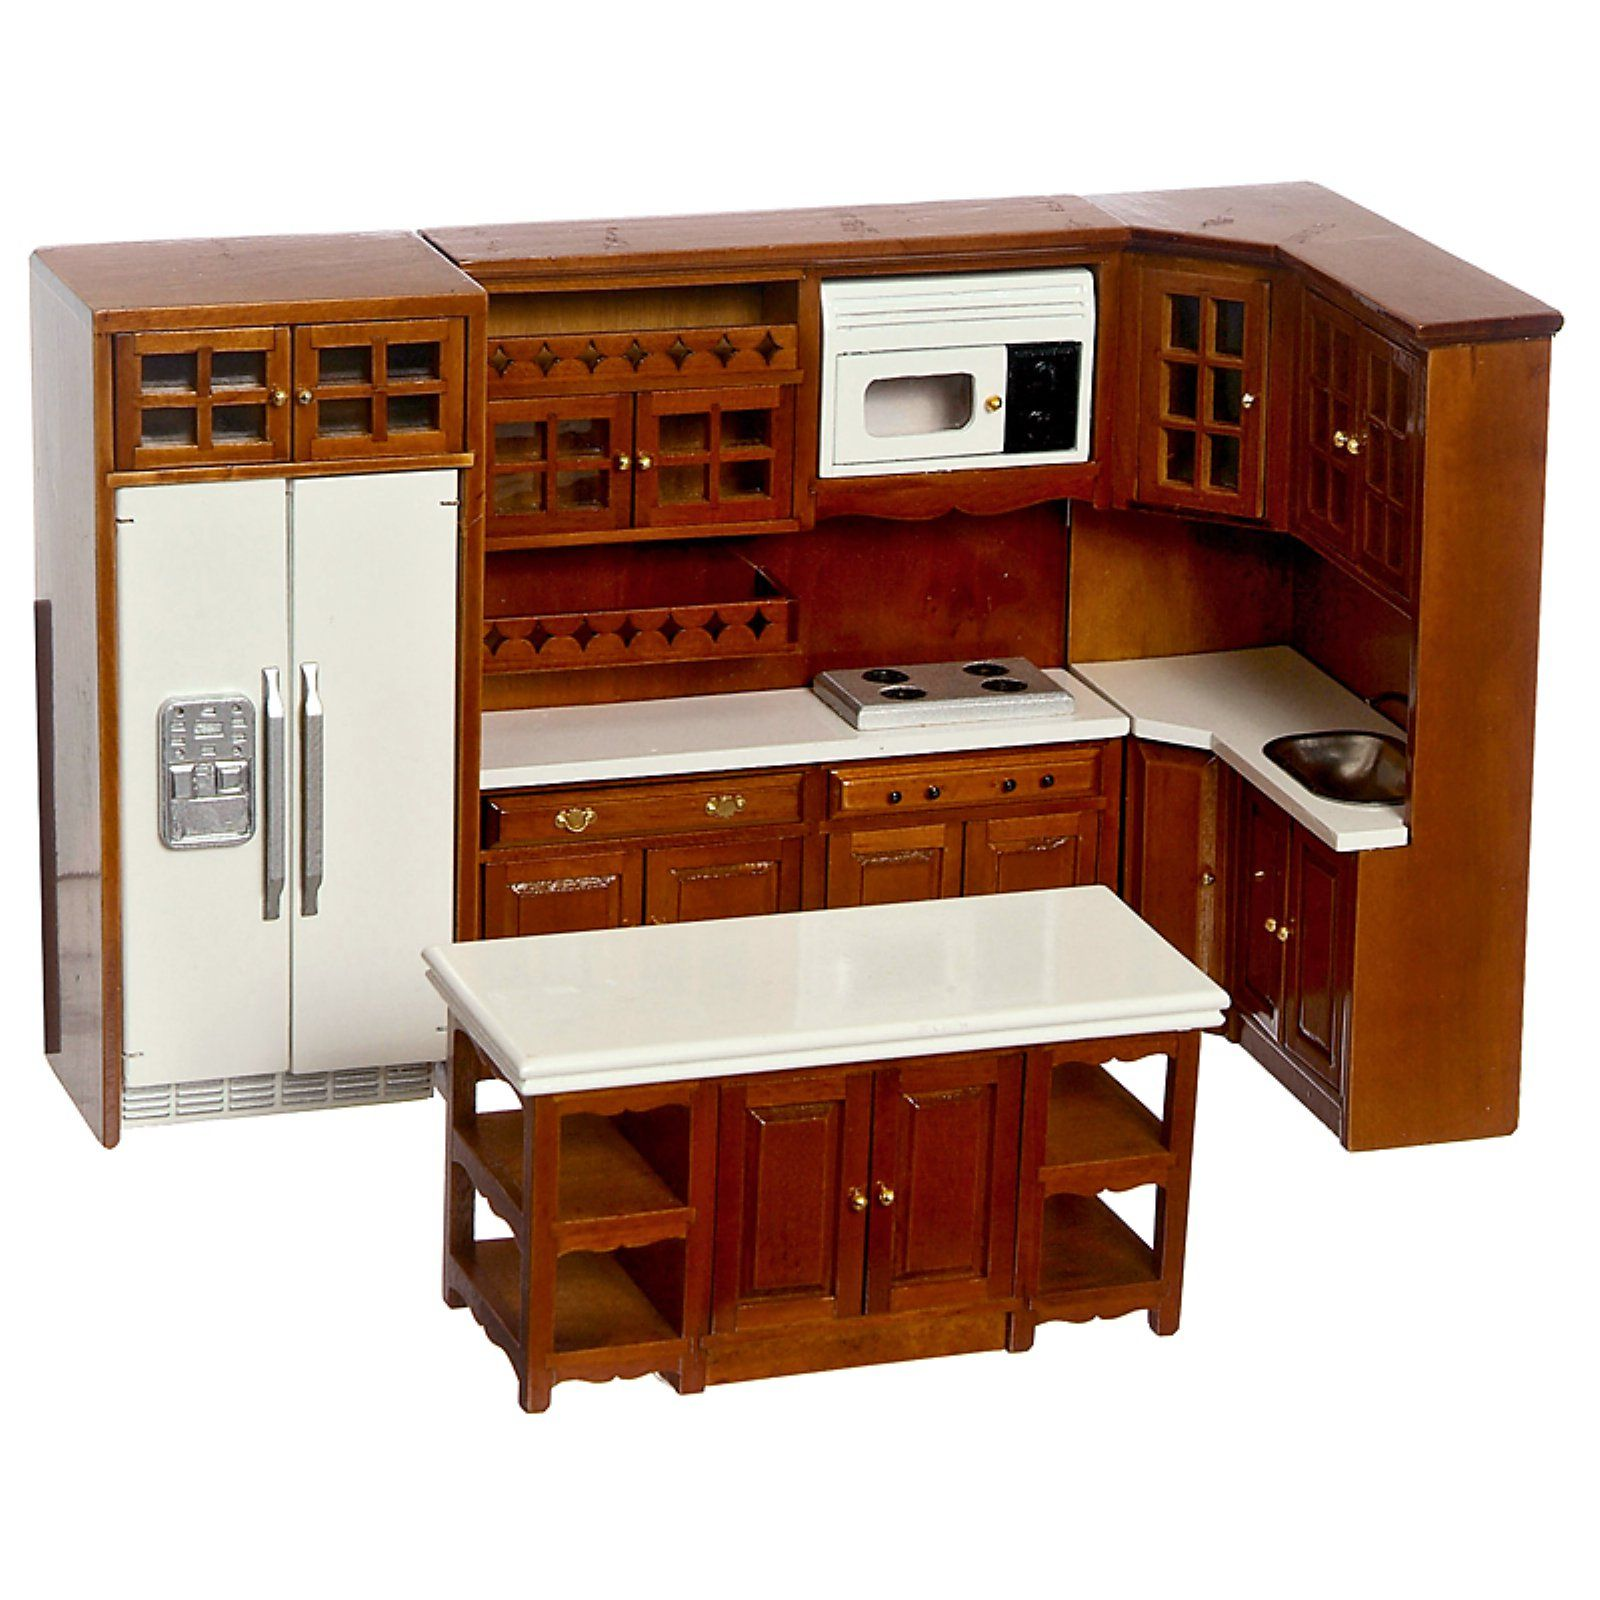 Walnut Kitchen Dollhouse Miniature Set